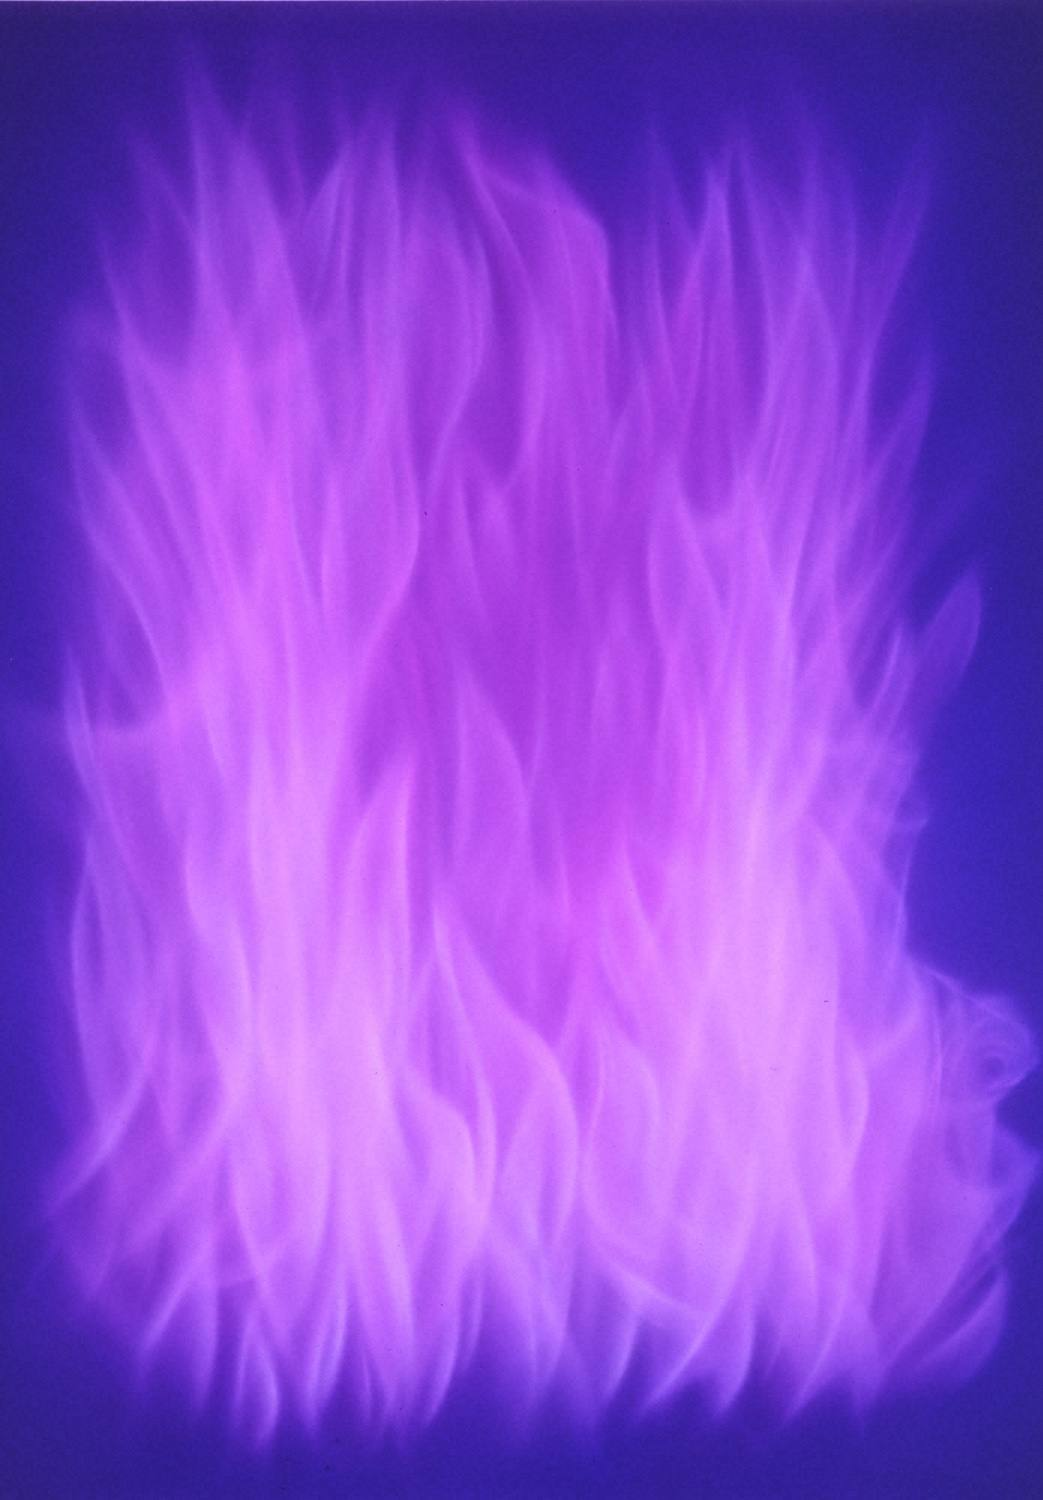 violet flame decree visualization